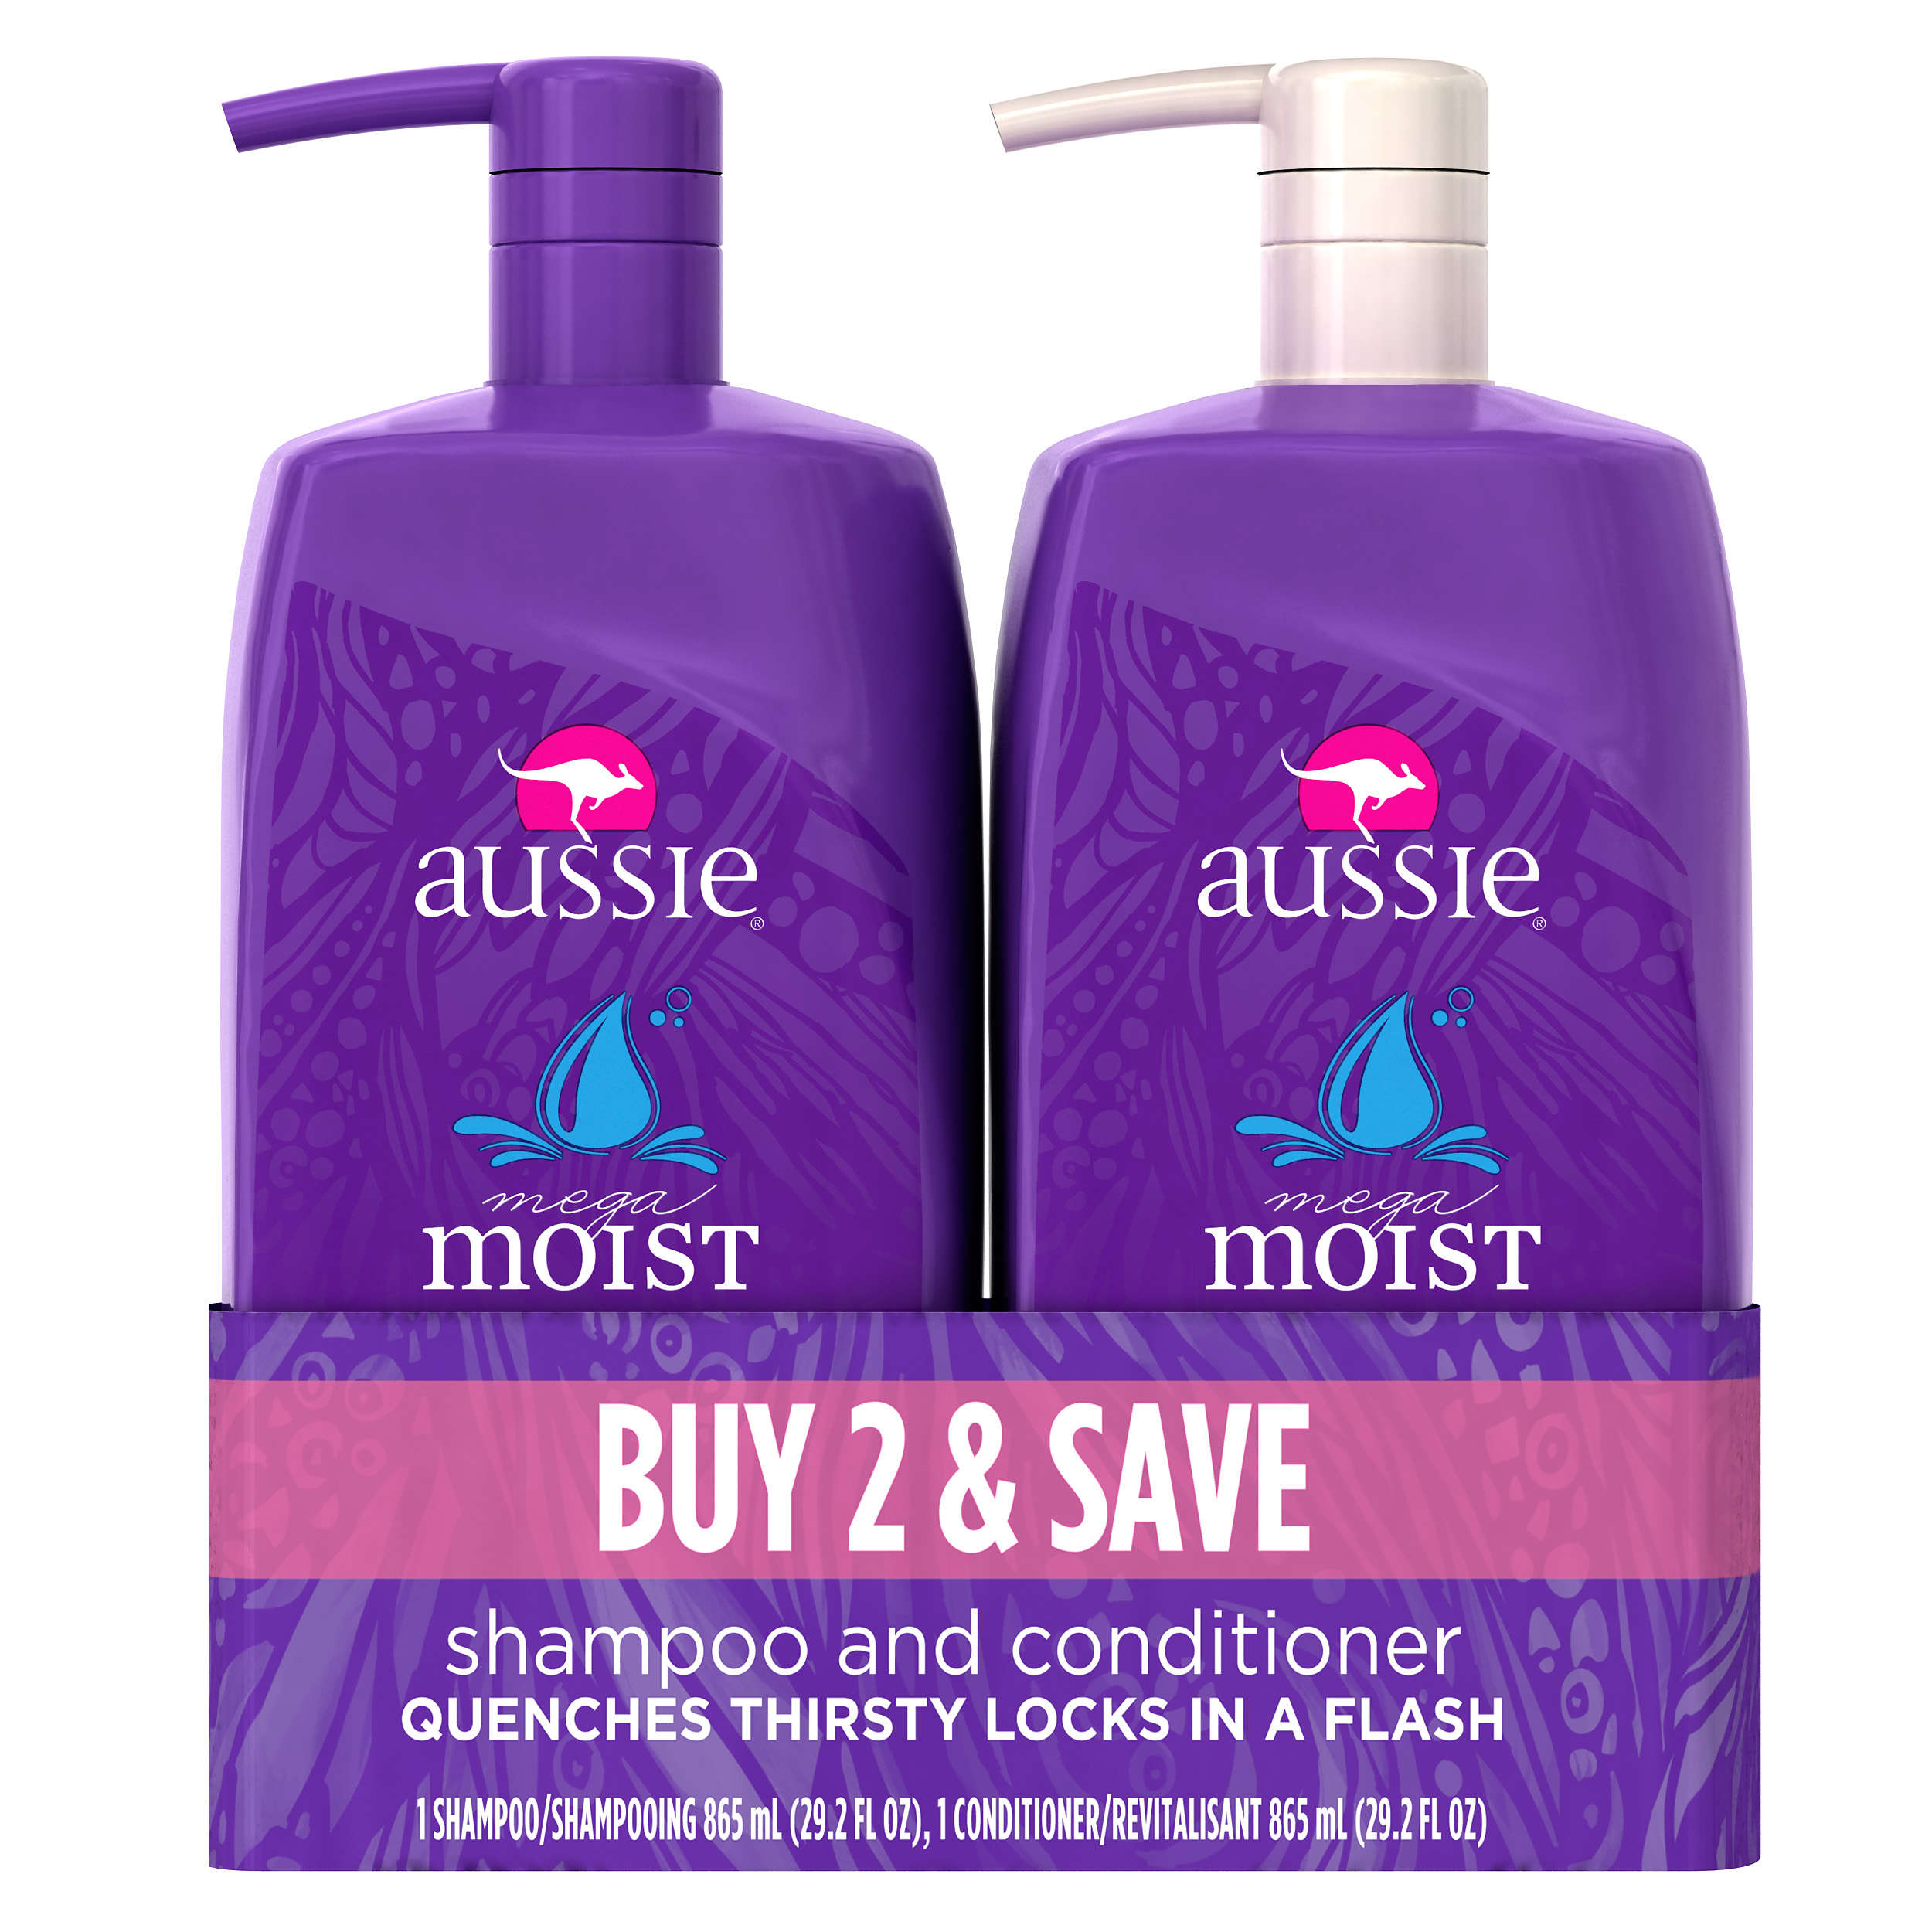 aussie mega moist shampoo and conditioner dual pack 29 2 fl oz